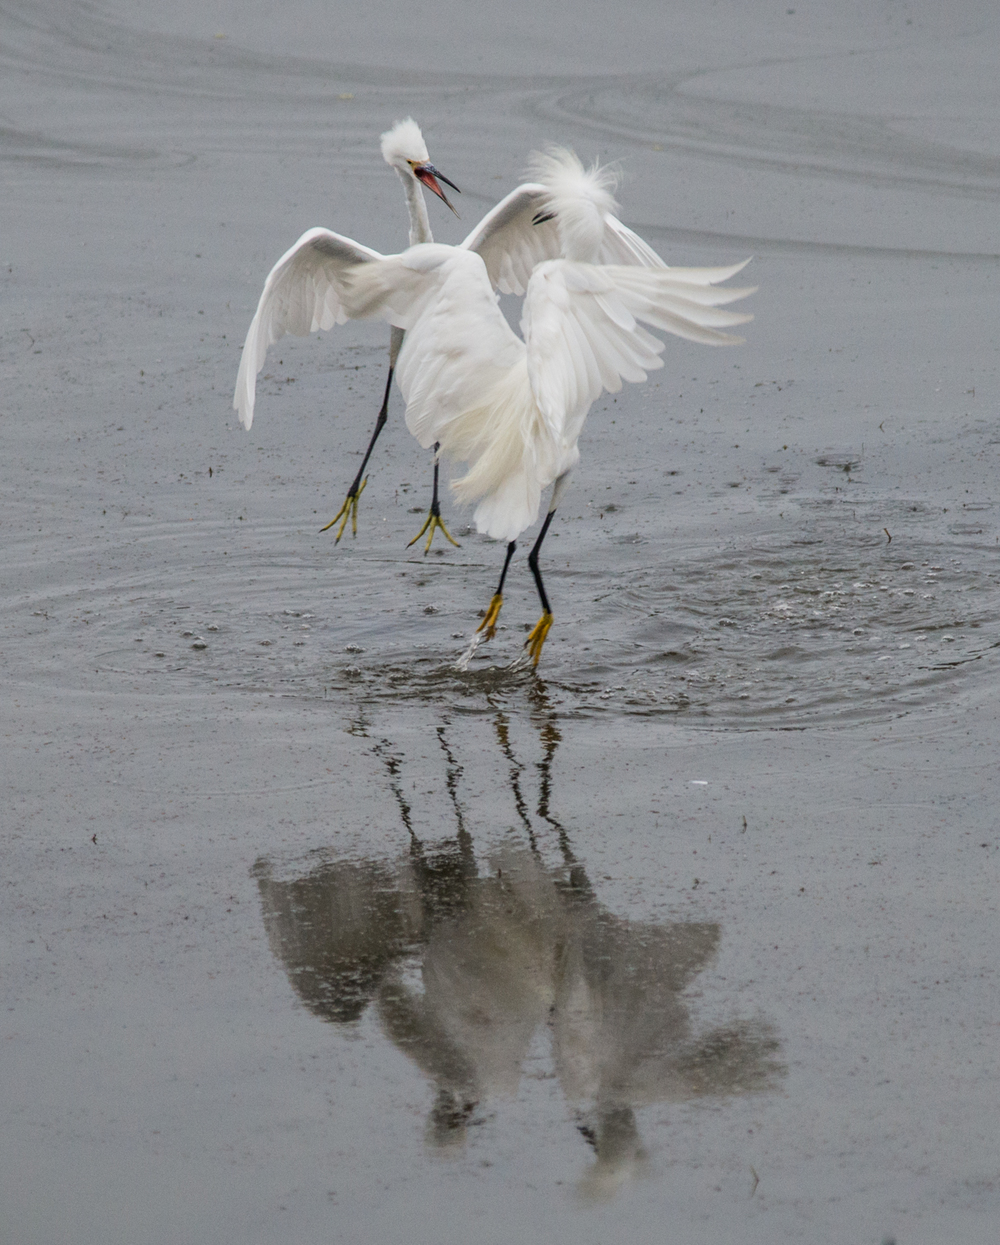 Photo of the Week 6:  Snowy Egret (Egretta thula)   EQ: D800 f/2.8 300mm with 1.7x TC    Taken: 8-8-14 7:12  Setting: 500mm, f/4.8, 1/500s, ISO1400, VR on     Condition: Very Foggy